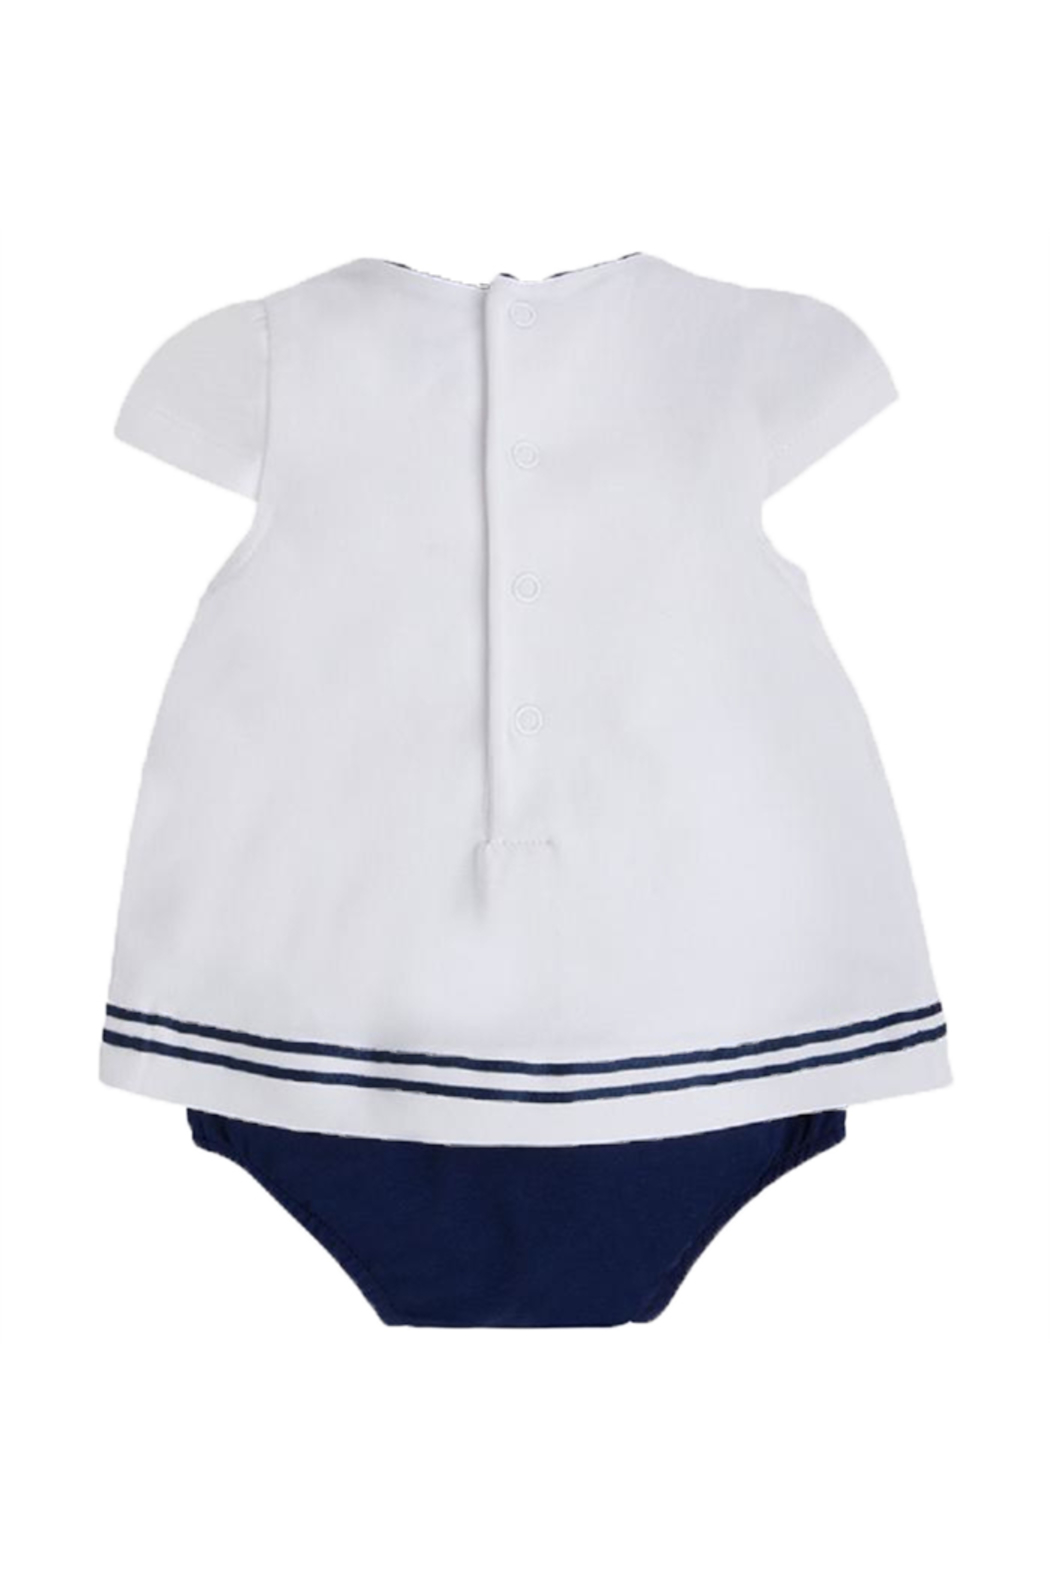 Mayoral Blousy Cap-Sleeve Onesie - Front Full Image